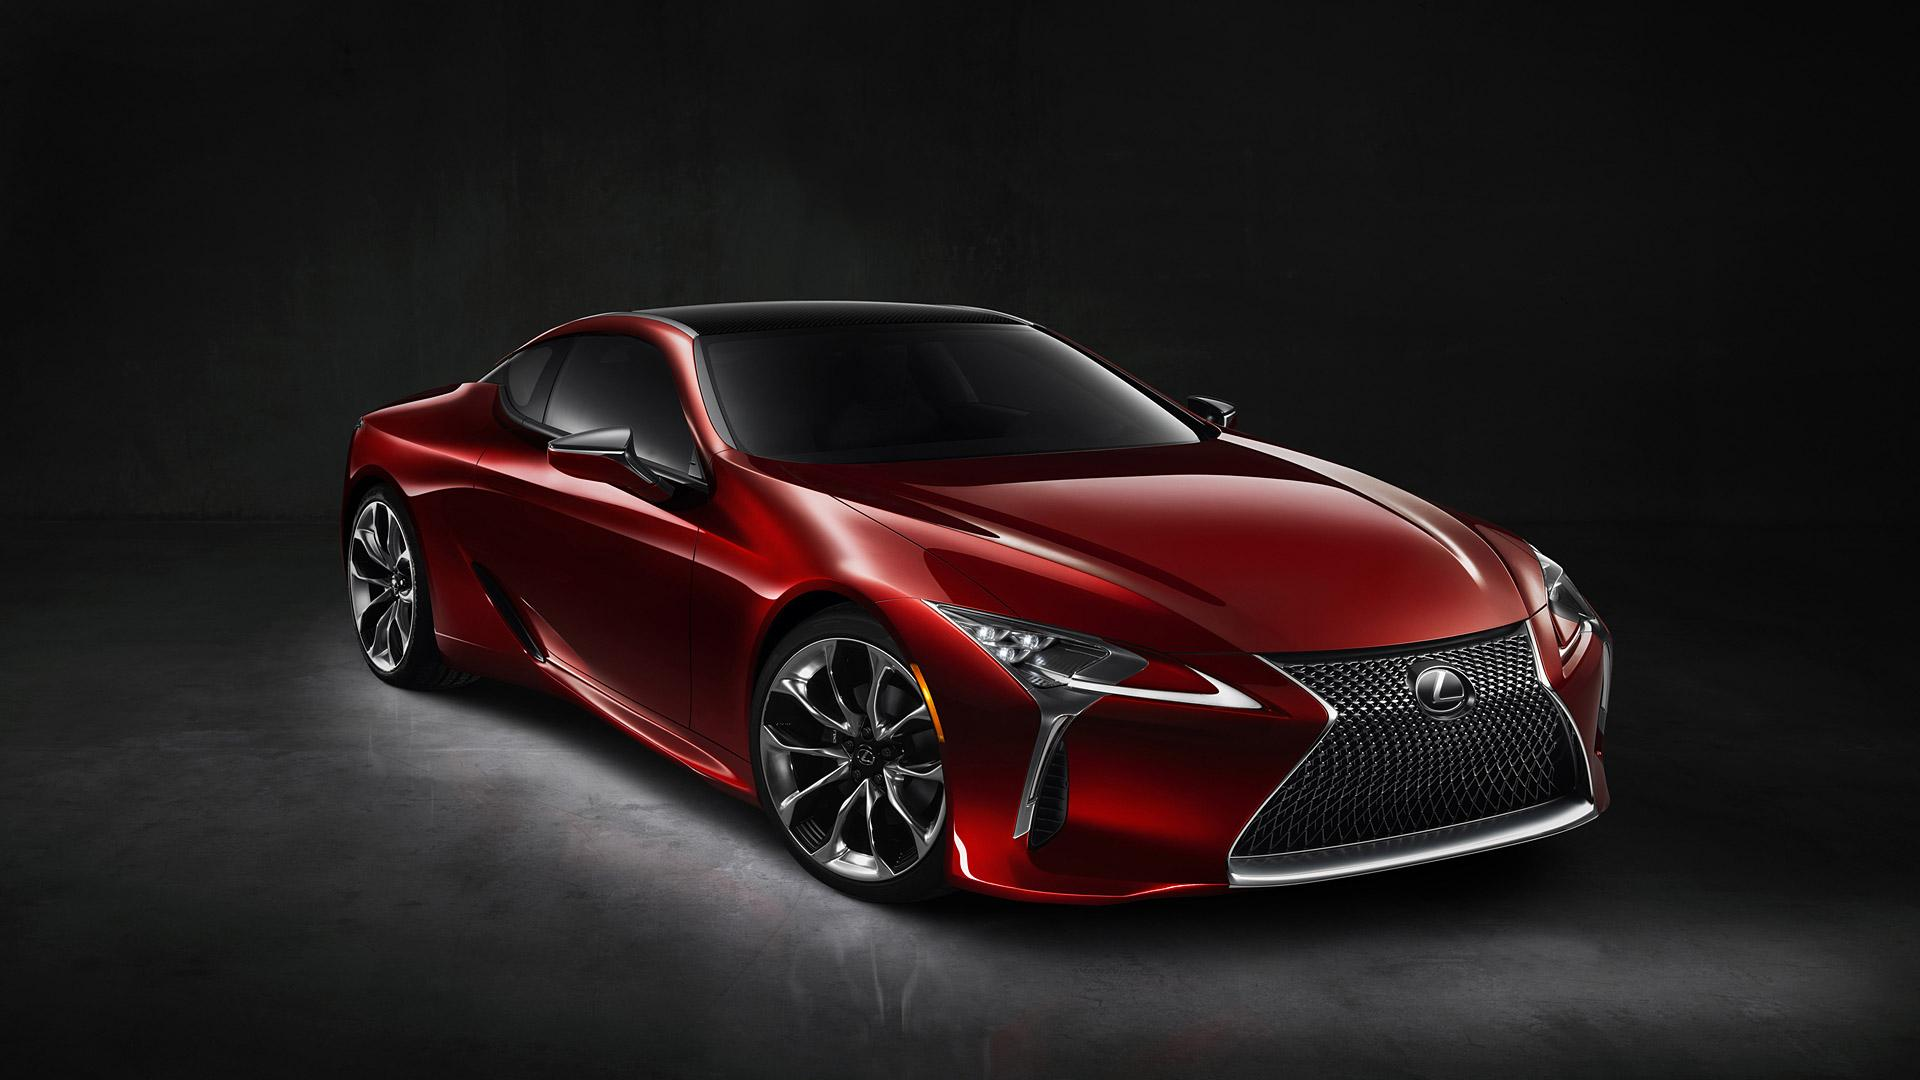 2017 Lexus LC 500 Wallpapers & HD Images - WSupercars